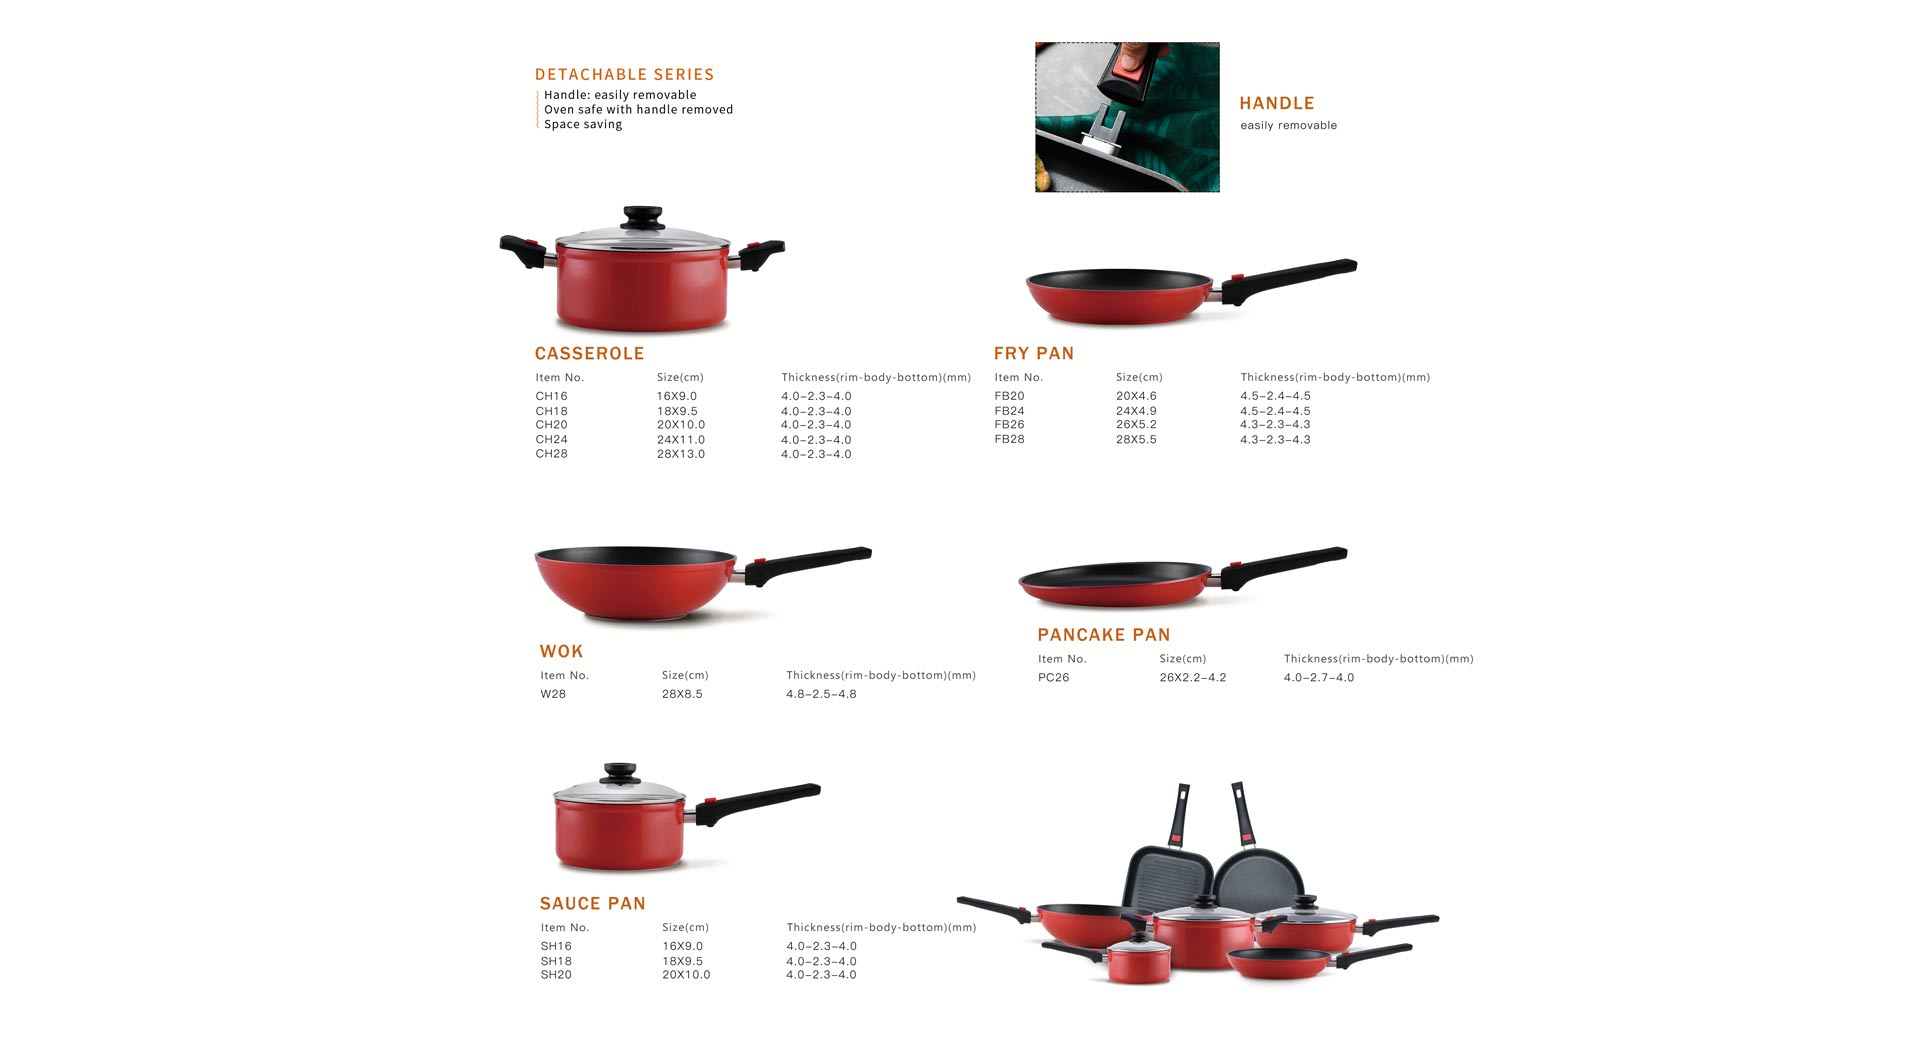 Detachable Series Cookware Set